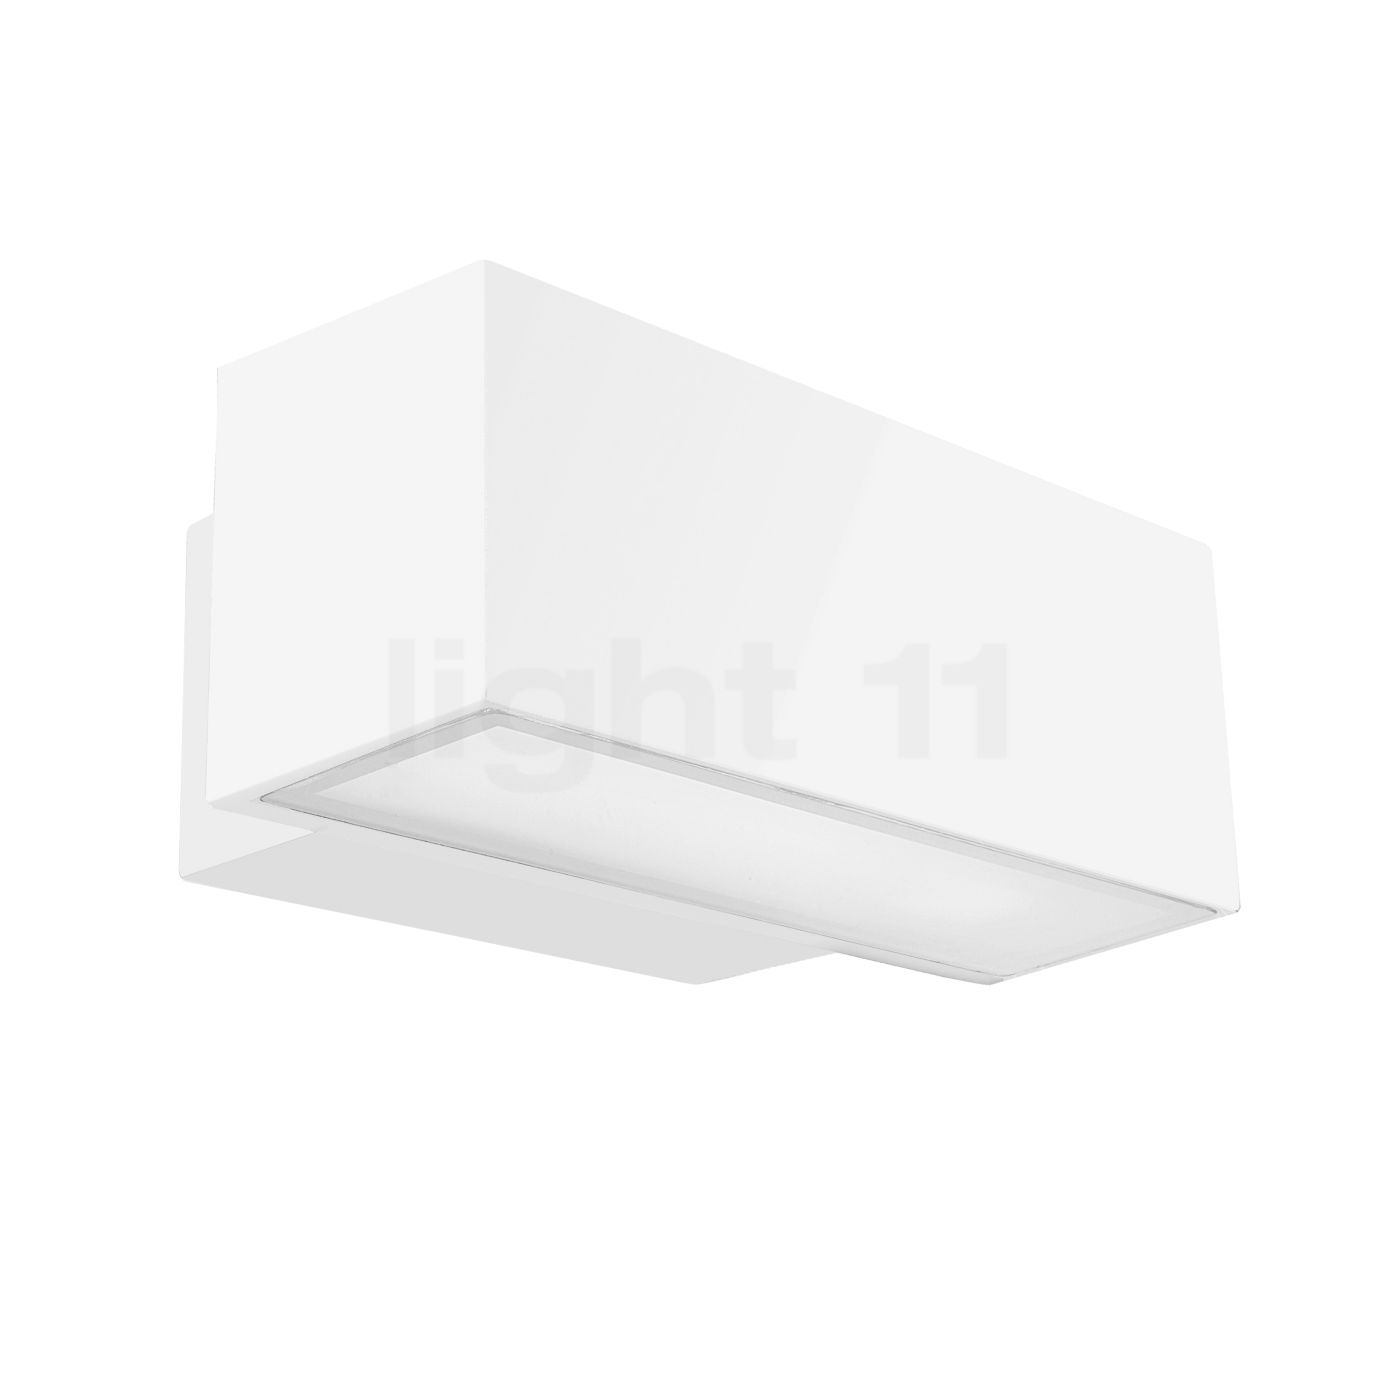 LEDS-C4 Afrodita Up/Down 39W Wandleuchte LED, weiß 05-9878-14-CL